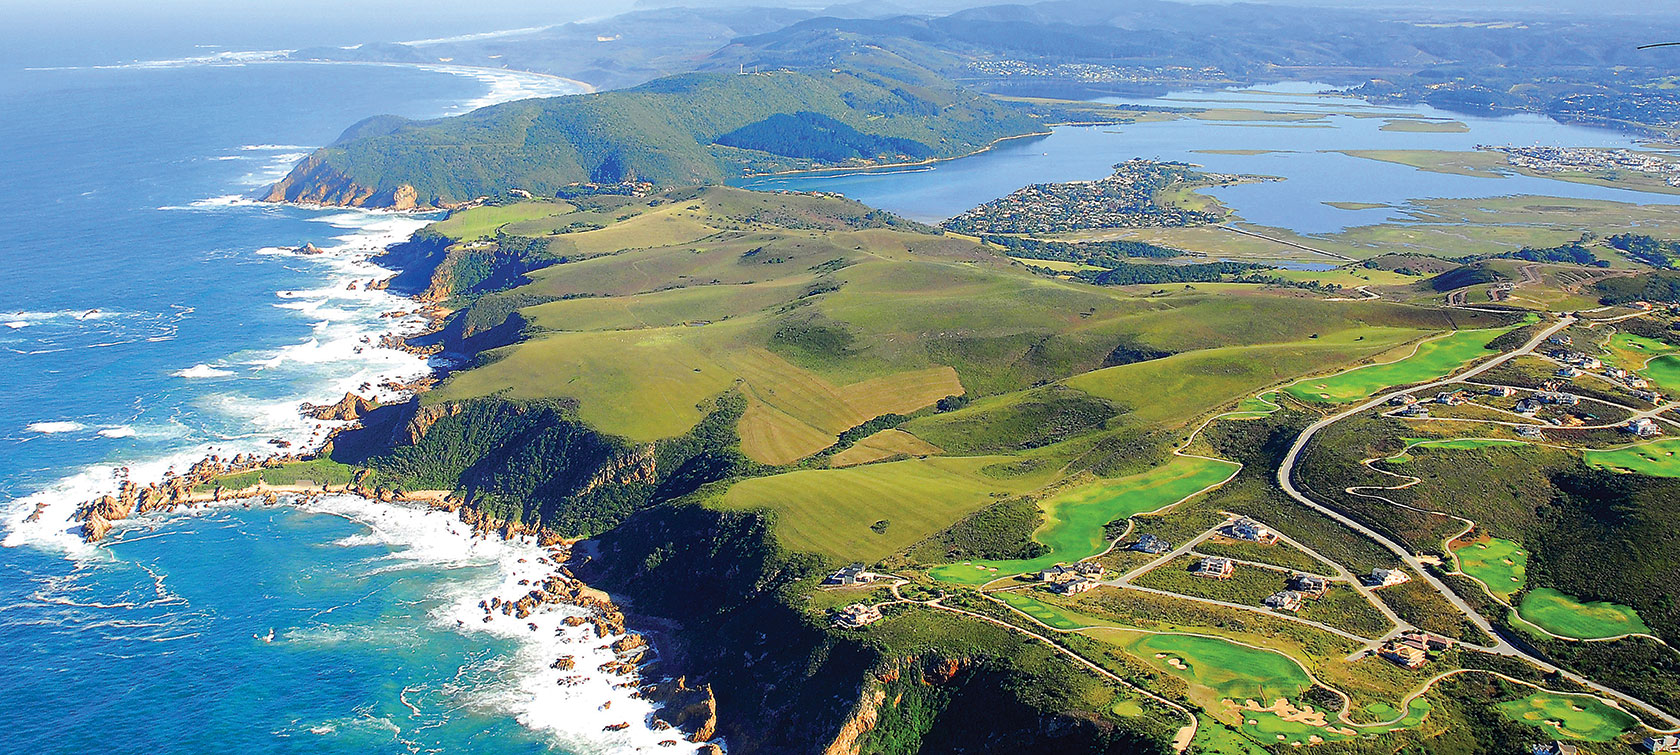 2015-Africa-South-Africa-South-Africa-Garden-Route-escorted-SS-Hero